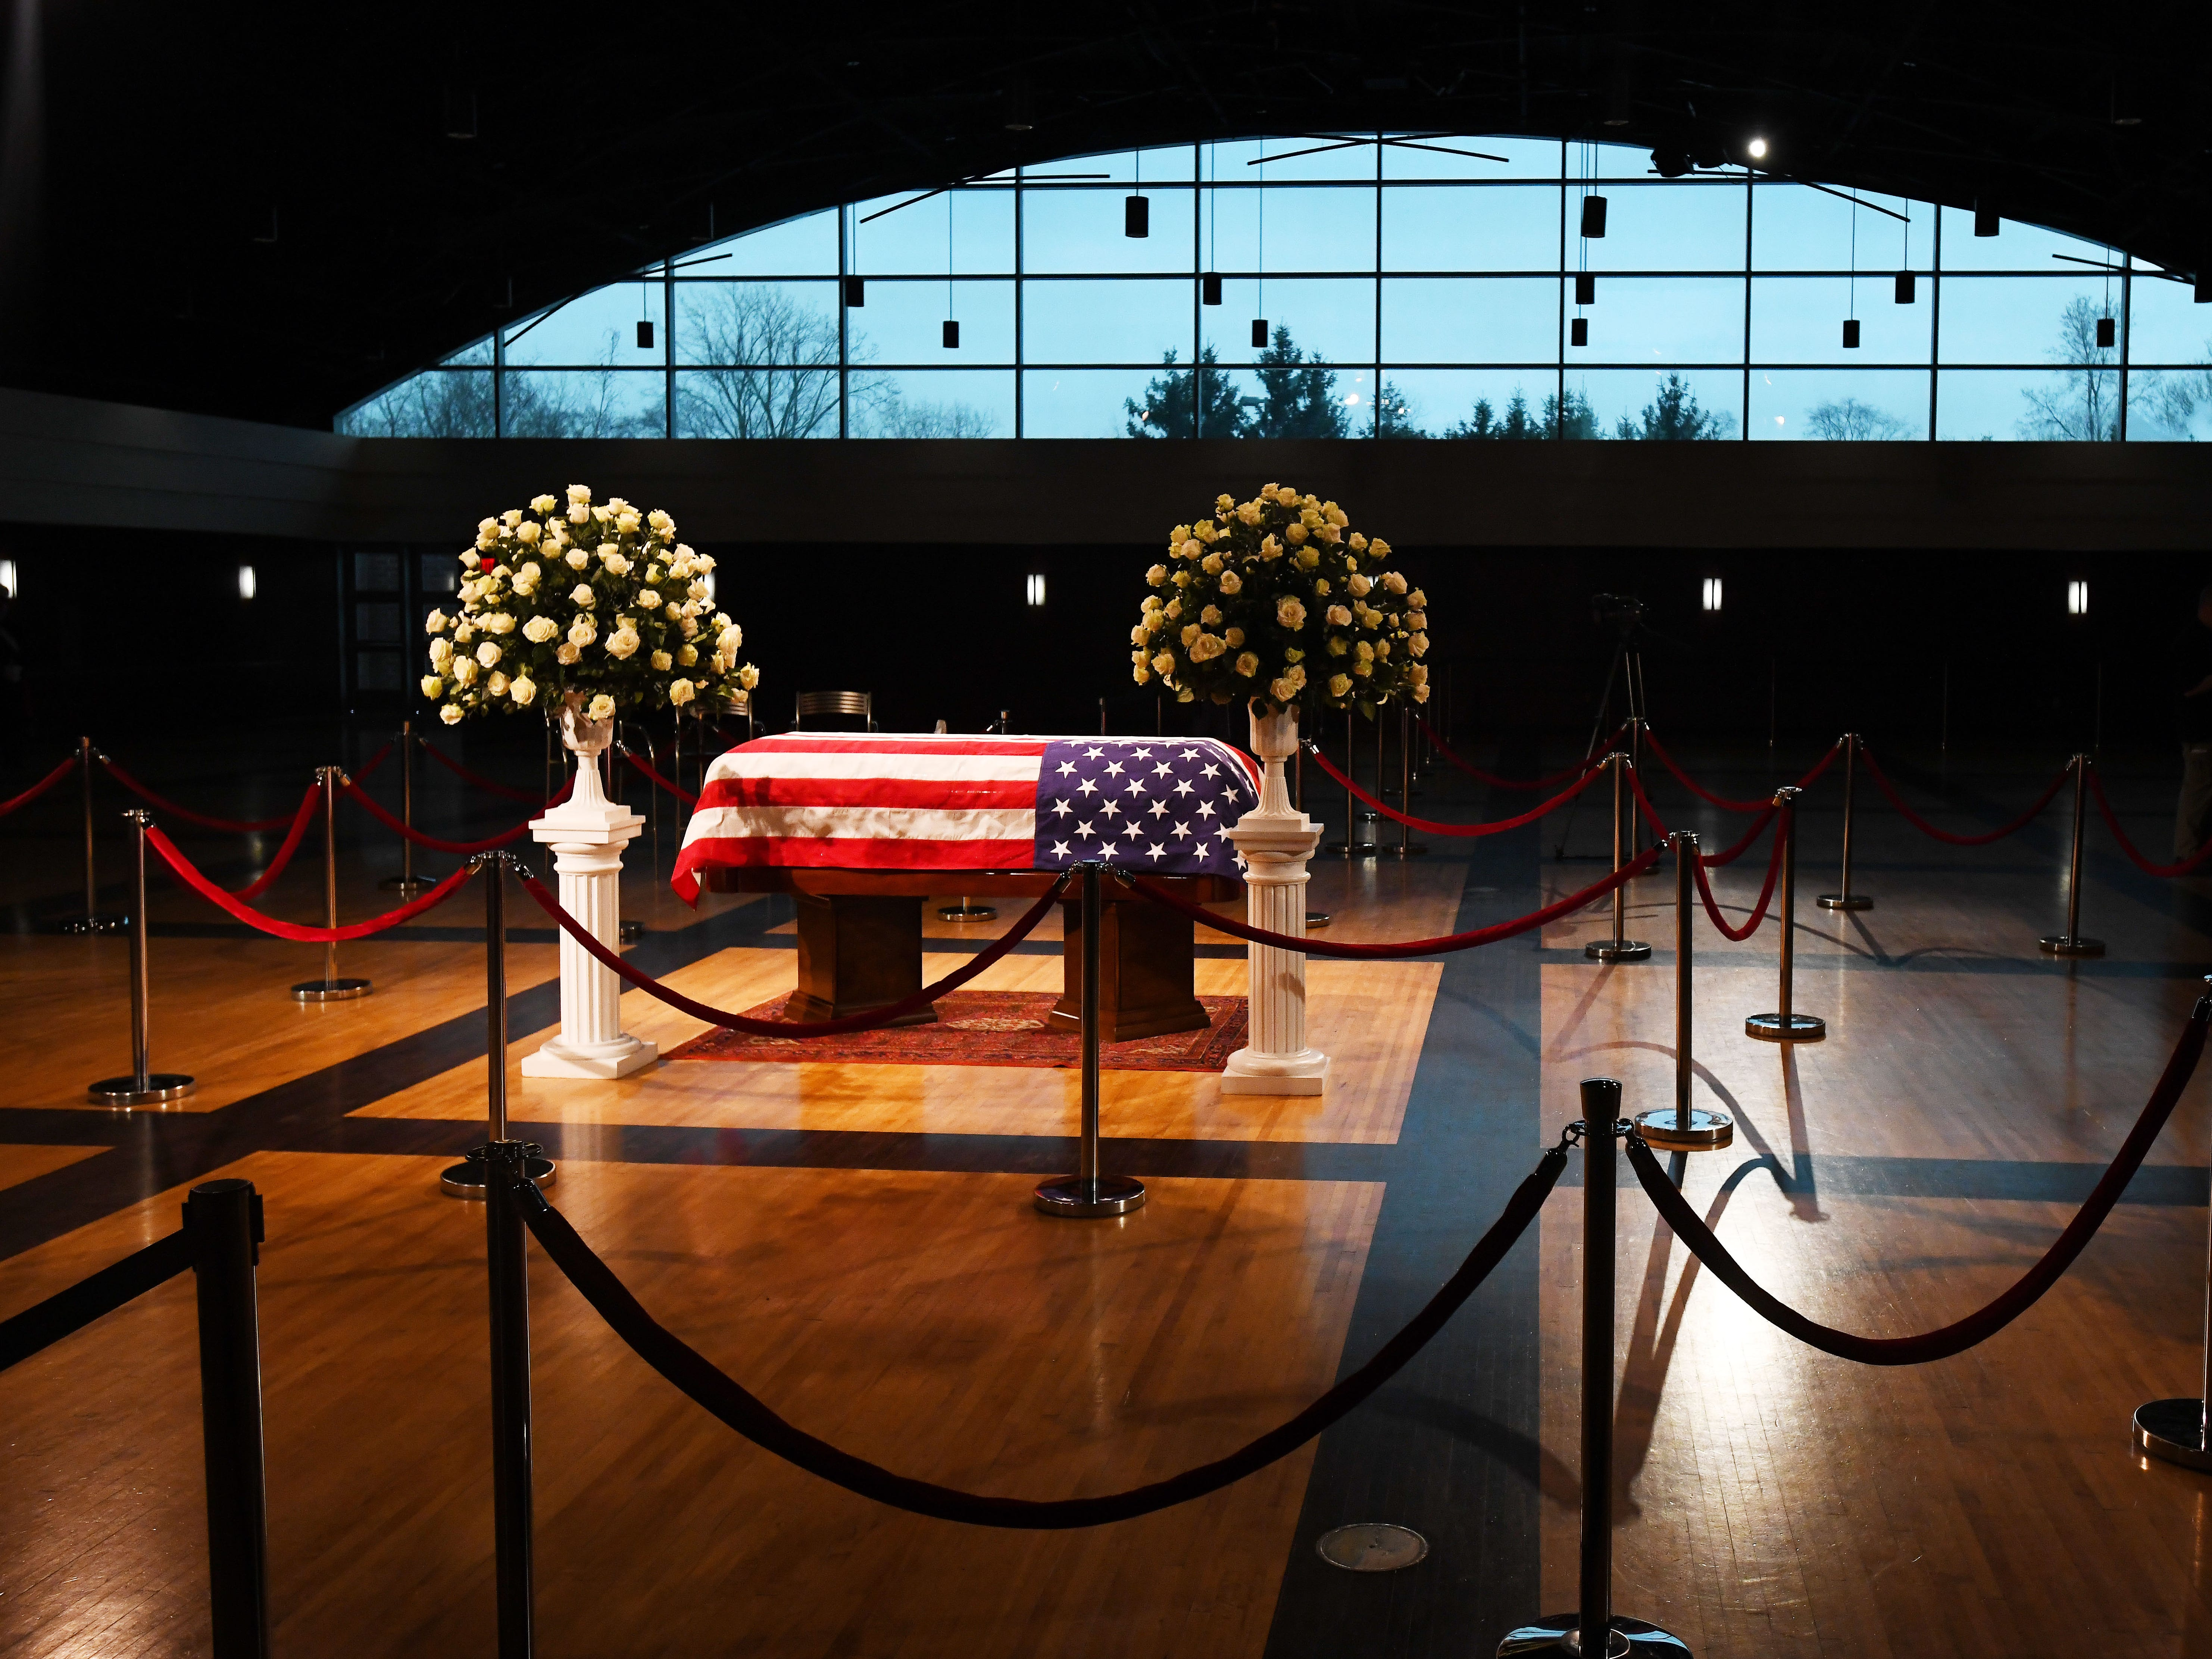 The casket sits in the middle of a large banquet room at the Ford Community and Performing Arts Center.